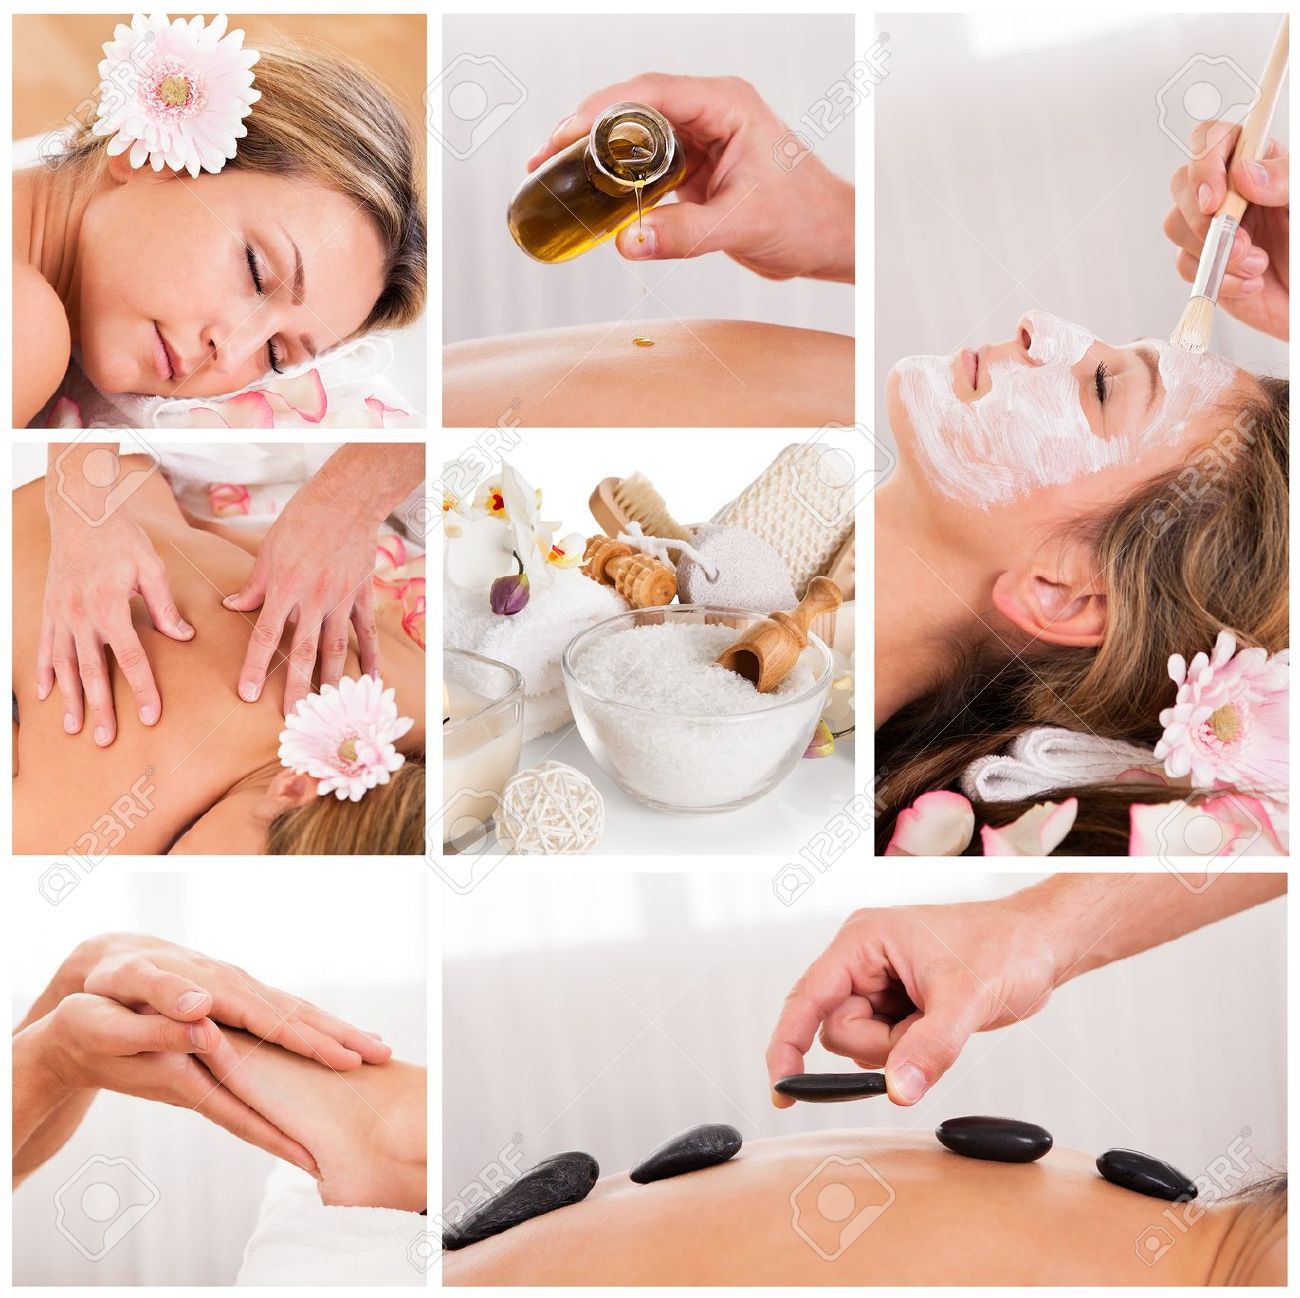 18882805-Collection-of-spa-images-from-spa-salon-Stock-Photo-spa-collage-facial